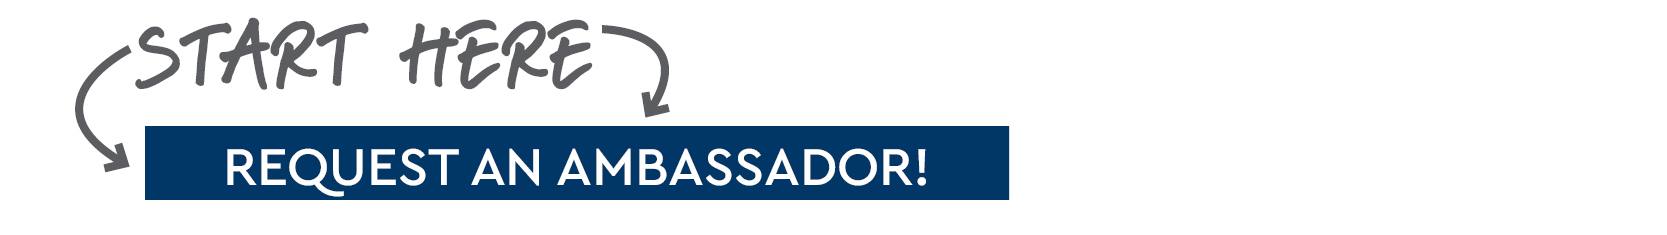 Request an Ambassador Form